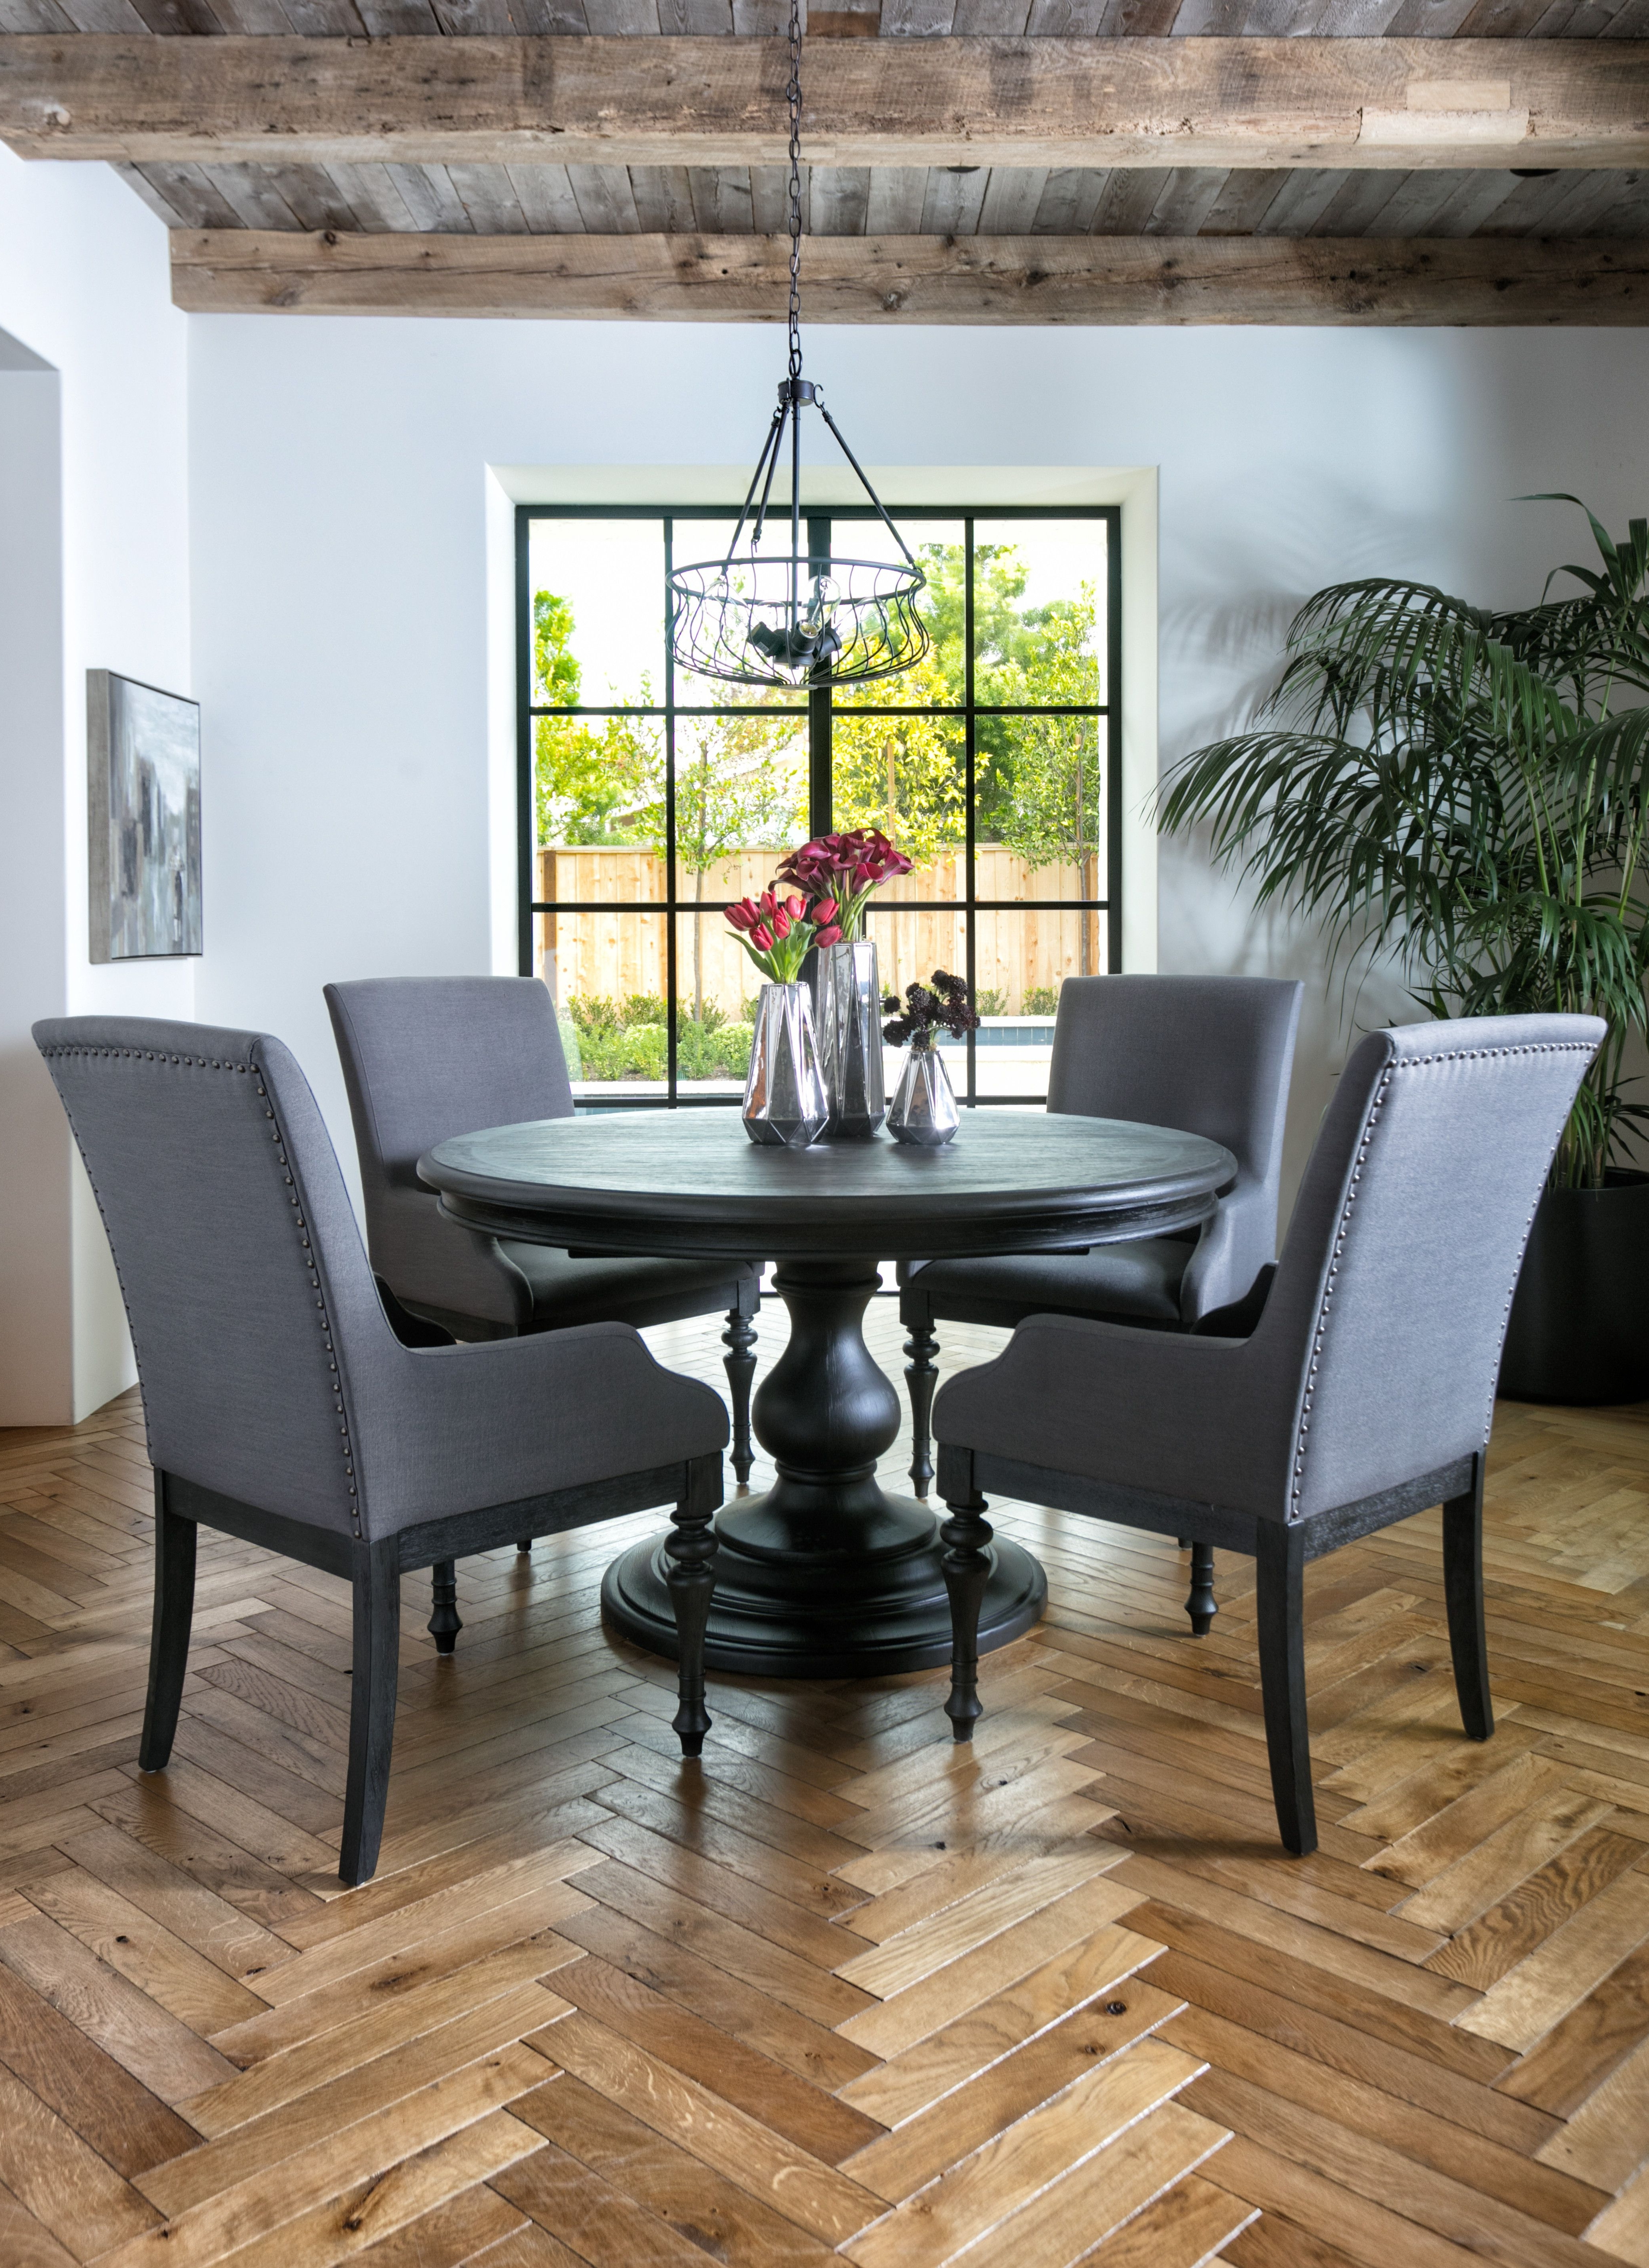 Caira Black 7 Piece Dining Sets With Arm Chairs & Diamond Back Chairs Regarding Best And Newest Caira Black 5 Piece Round Dining Set With Diamond Back Side Chairs (View 2 of 16)